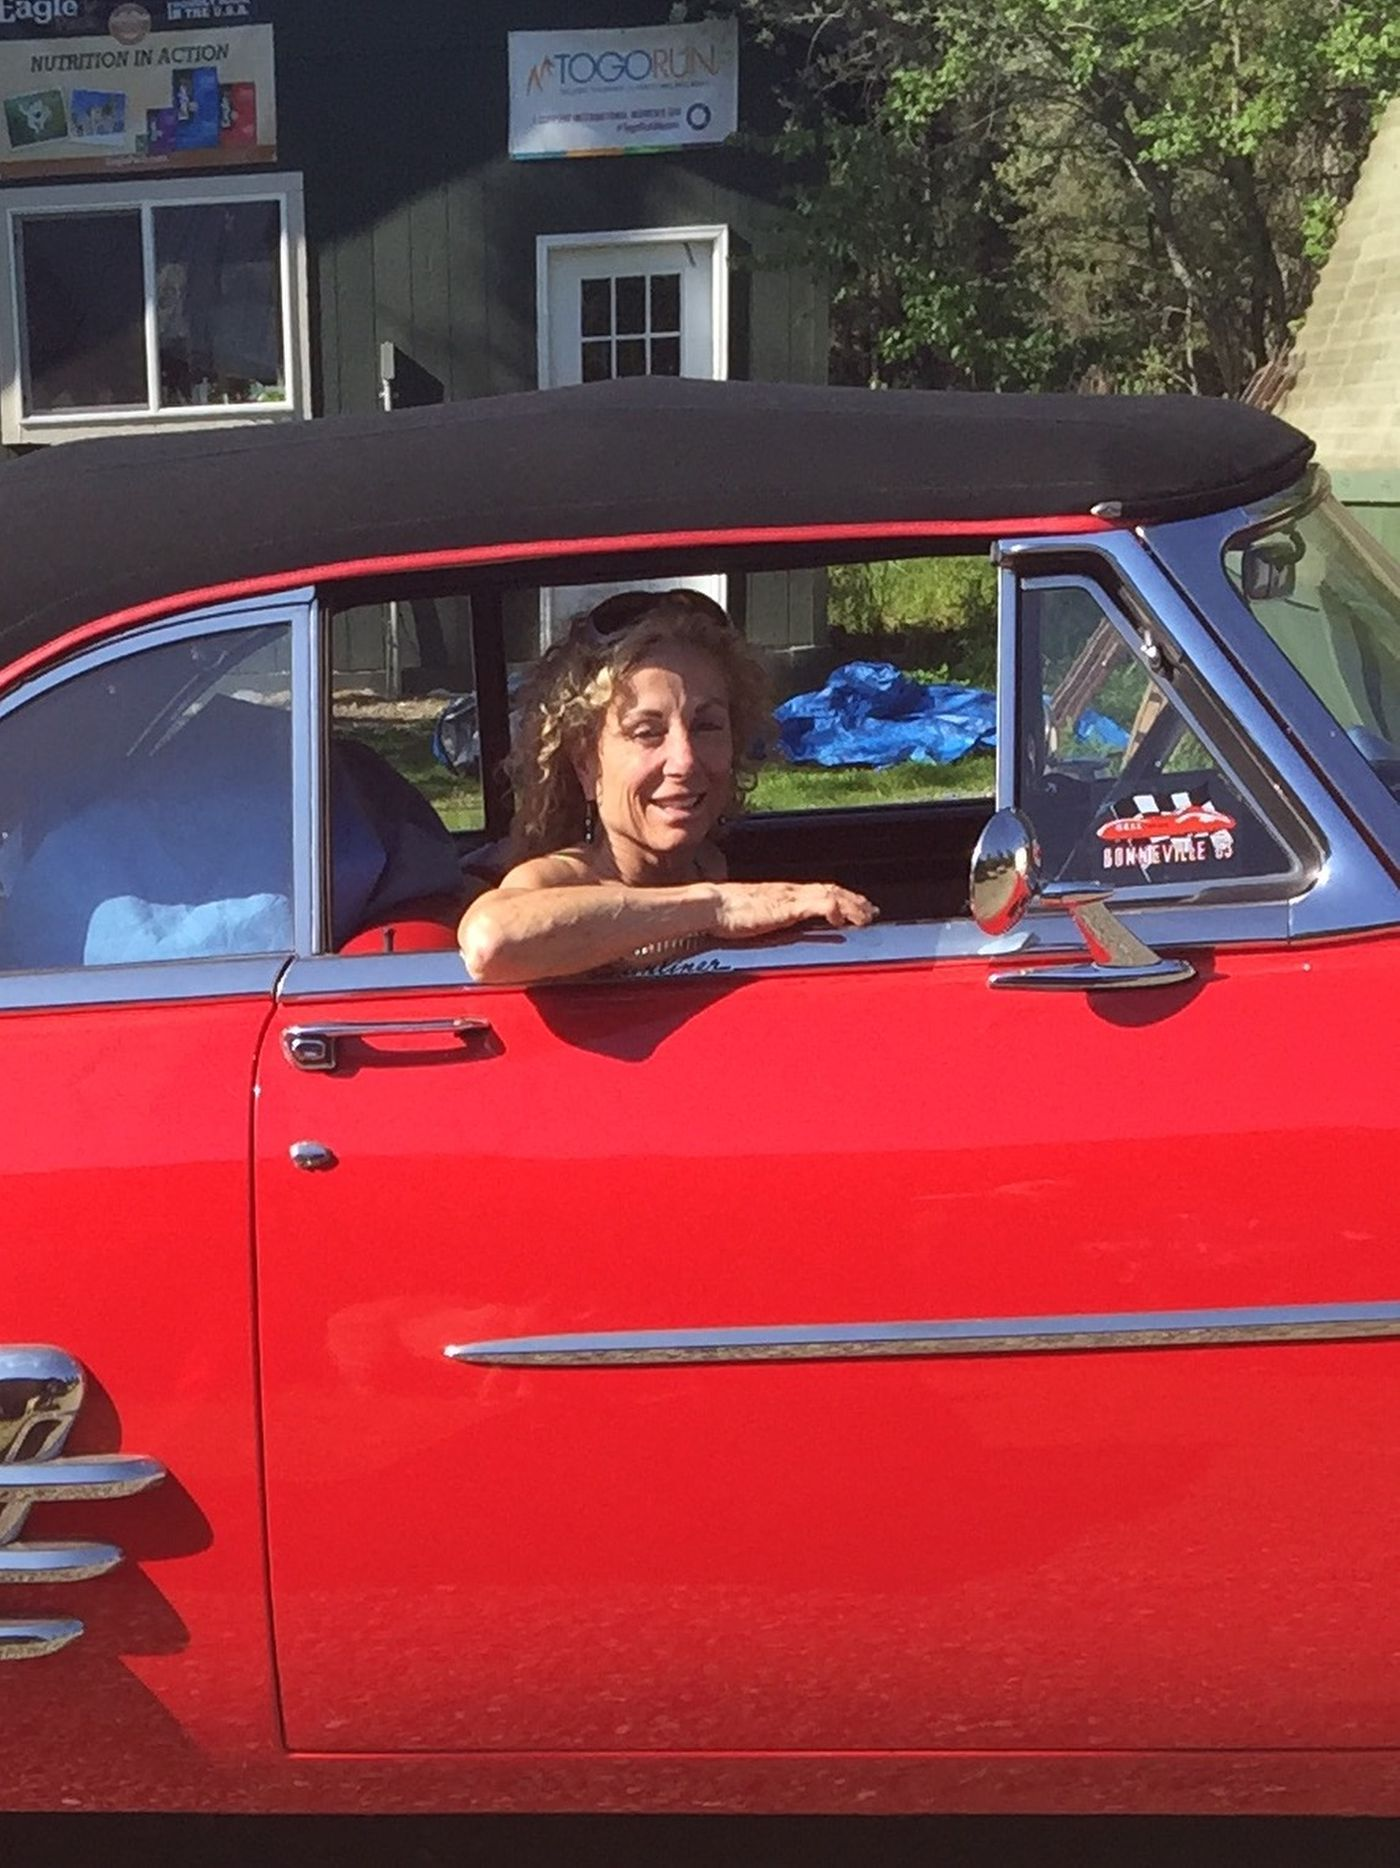 DeeDee Jonrowe and her 1953 Ford cherry red convertible her father left her when he died. Photographed on Saturday, May 30, 2015.